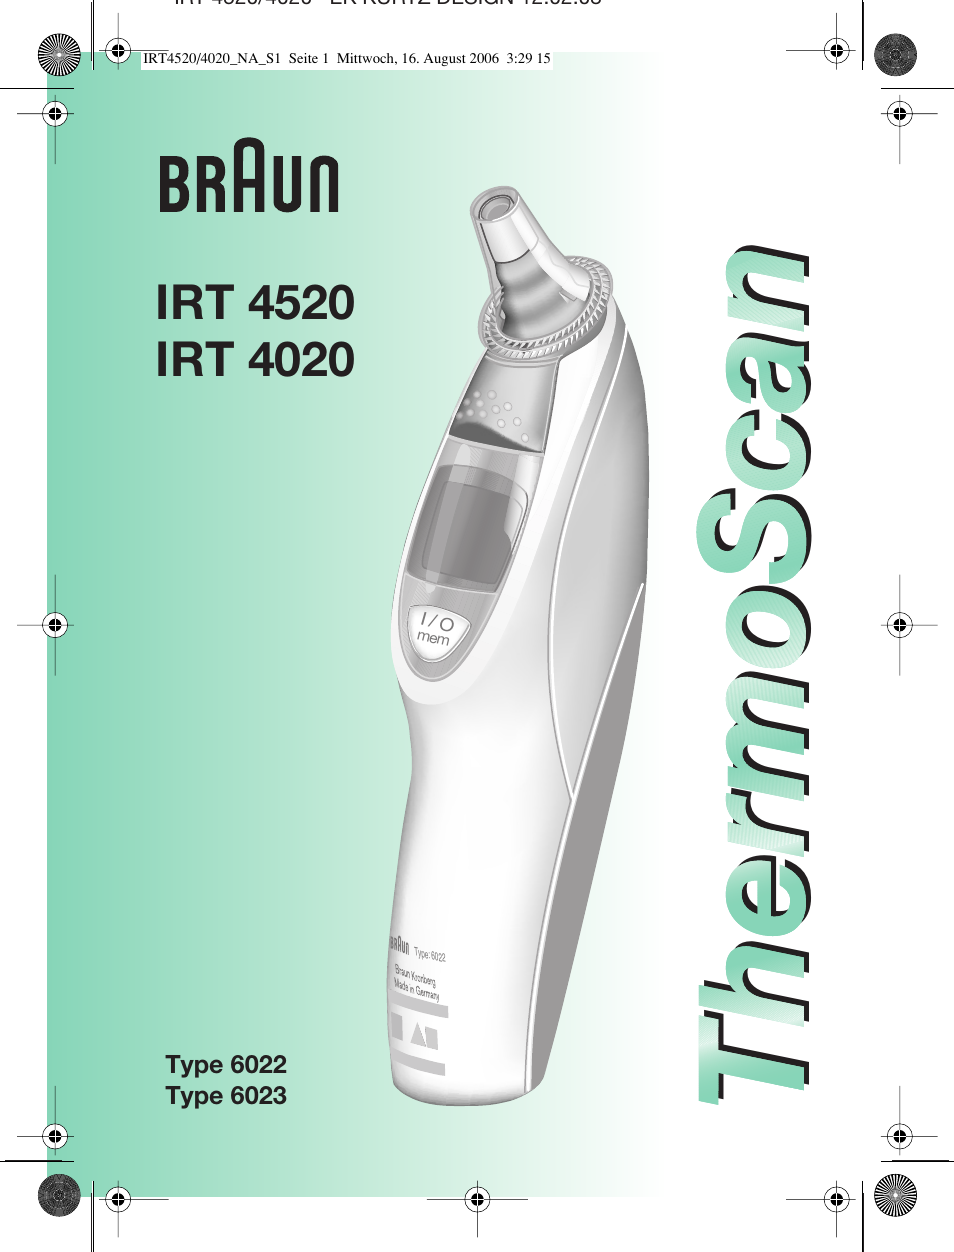 Wrg-3427] braun thermoscan ear thermometer type 6022 manual | 2019.